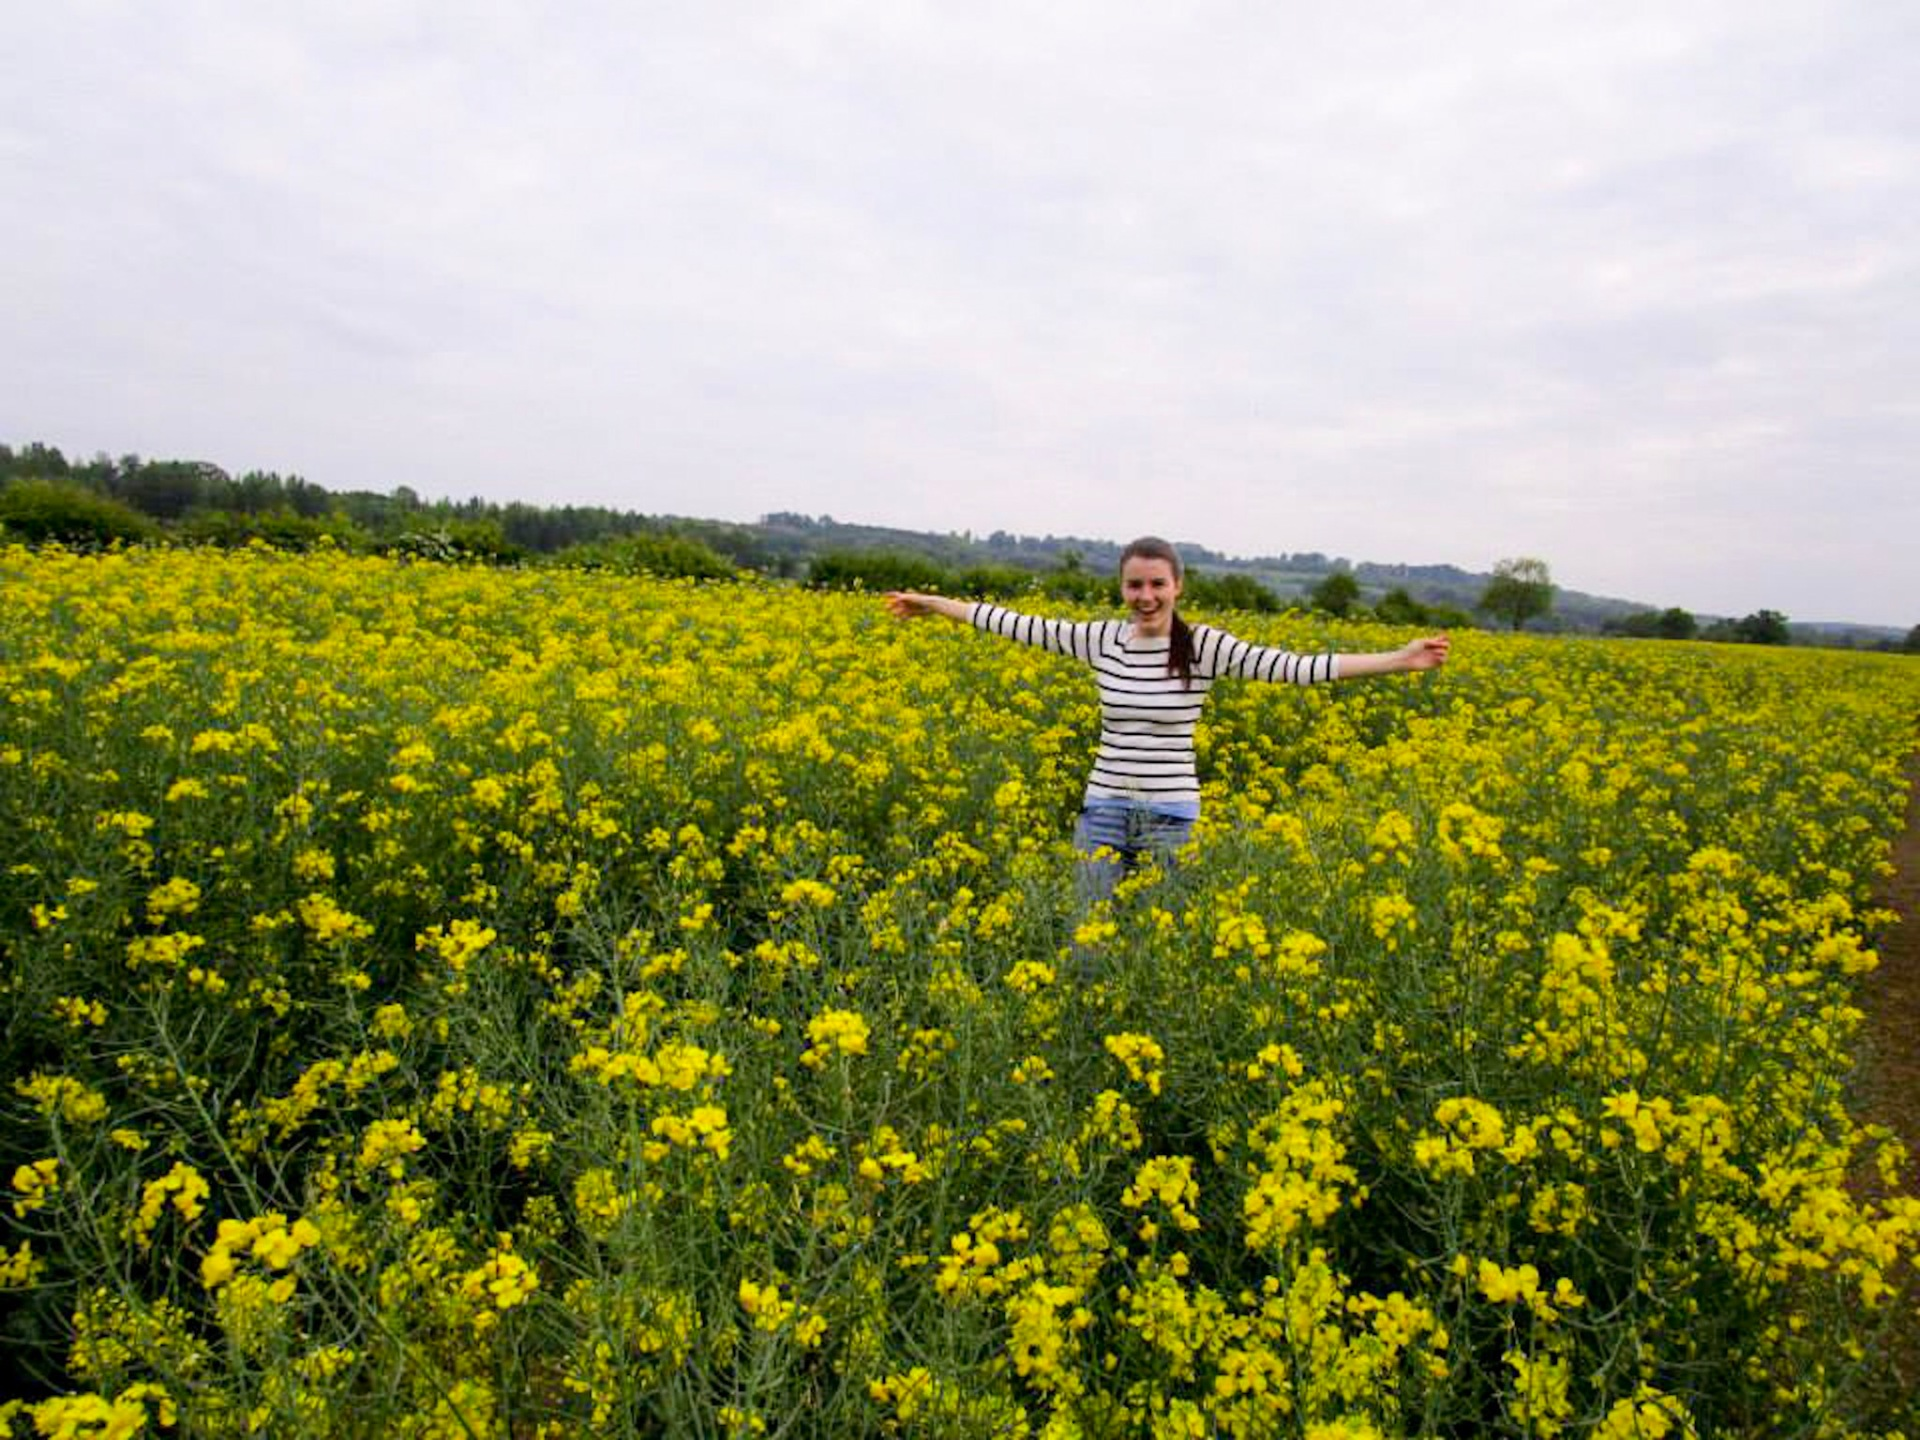 Yellow rapeseed flowers fields in the Cotswolds